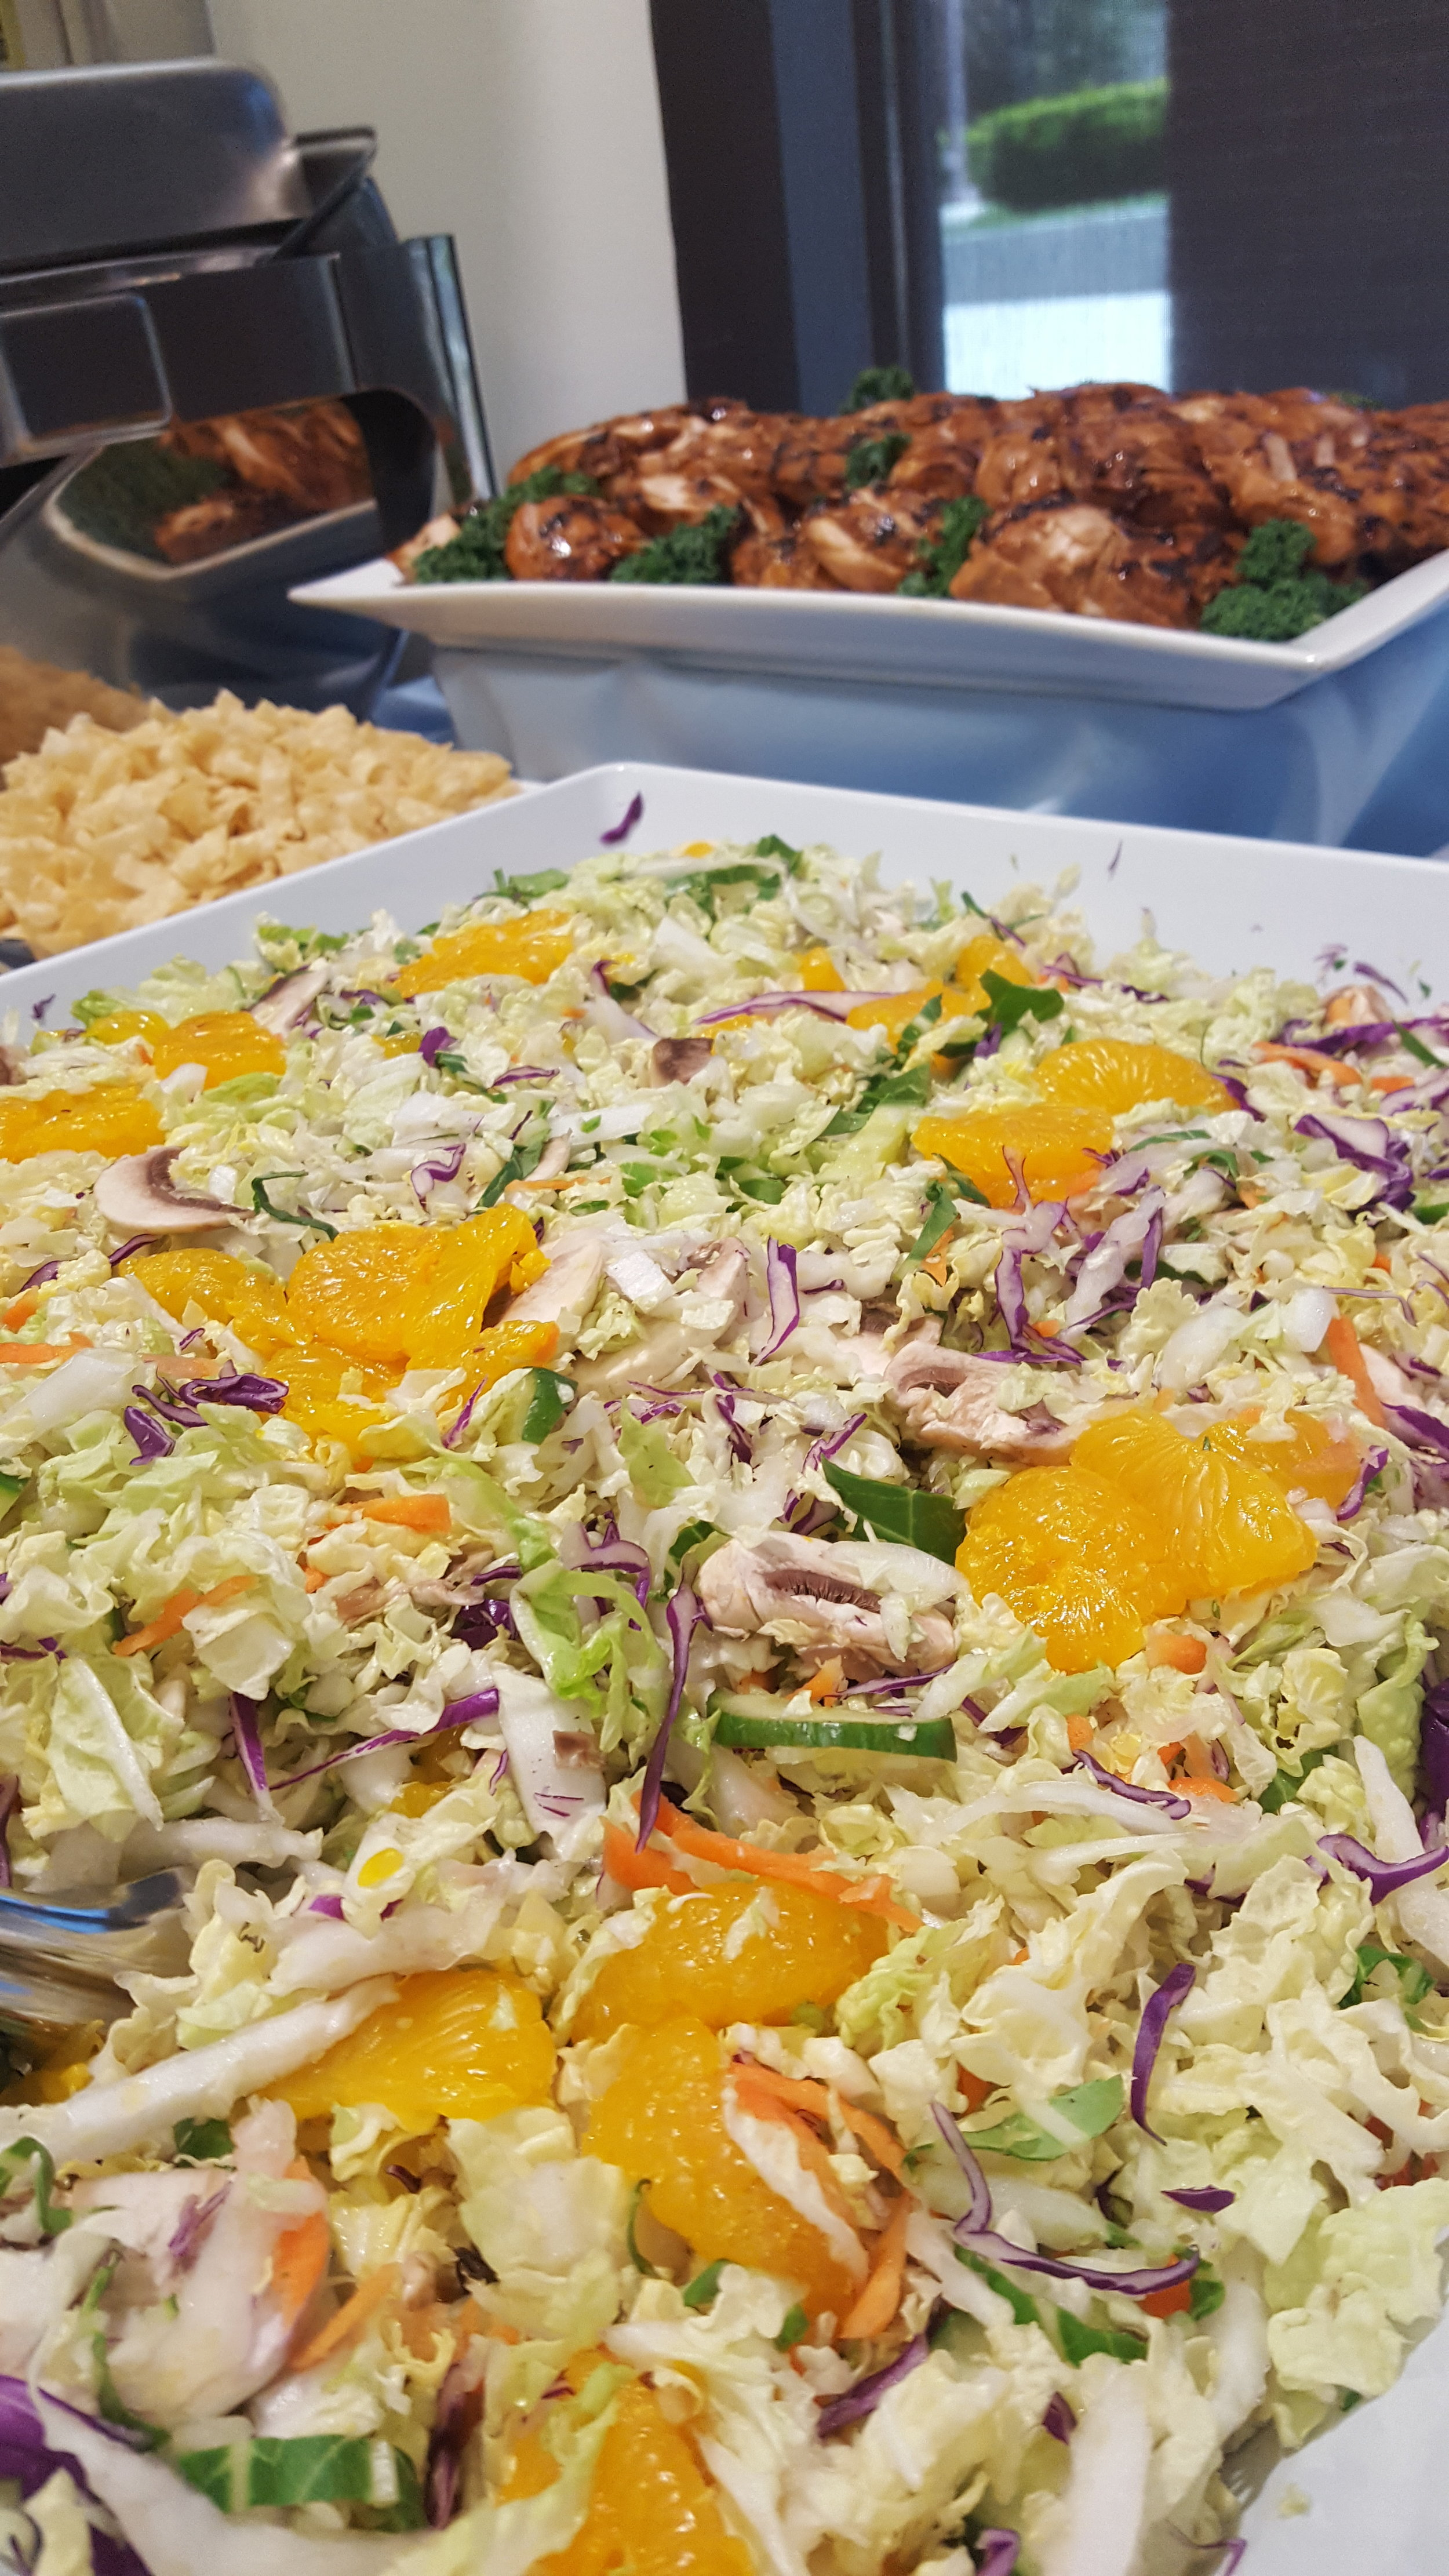 Garden Salad with Mandarin Oranges, Toasted Almonds, Crispy Wonton Strips, and Ginger Soy Dressing